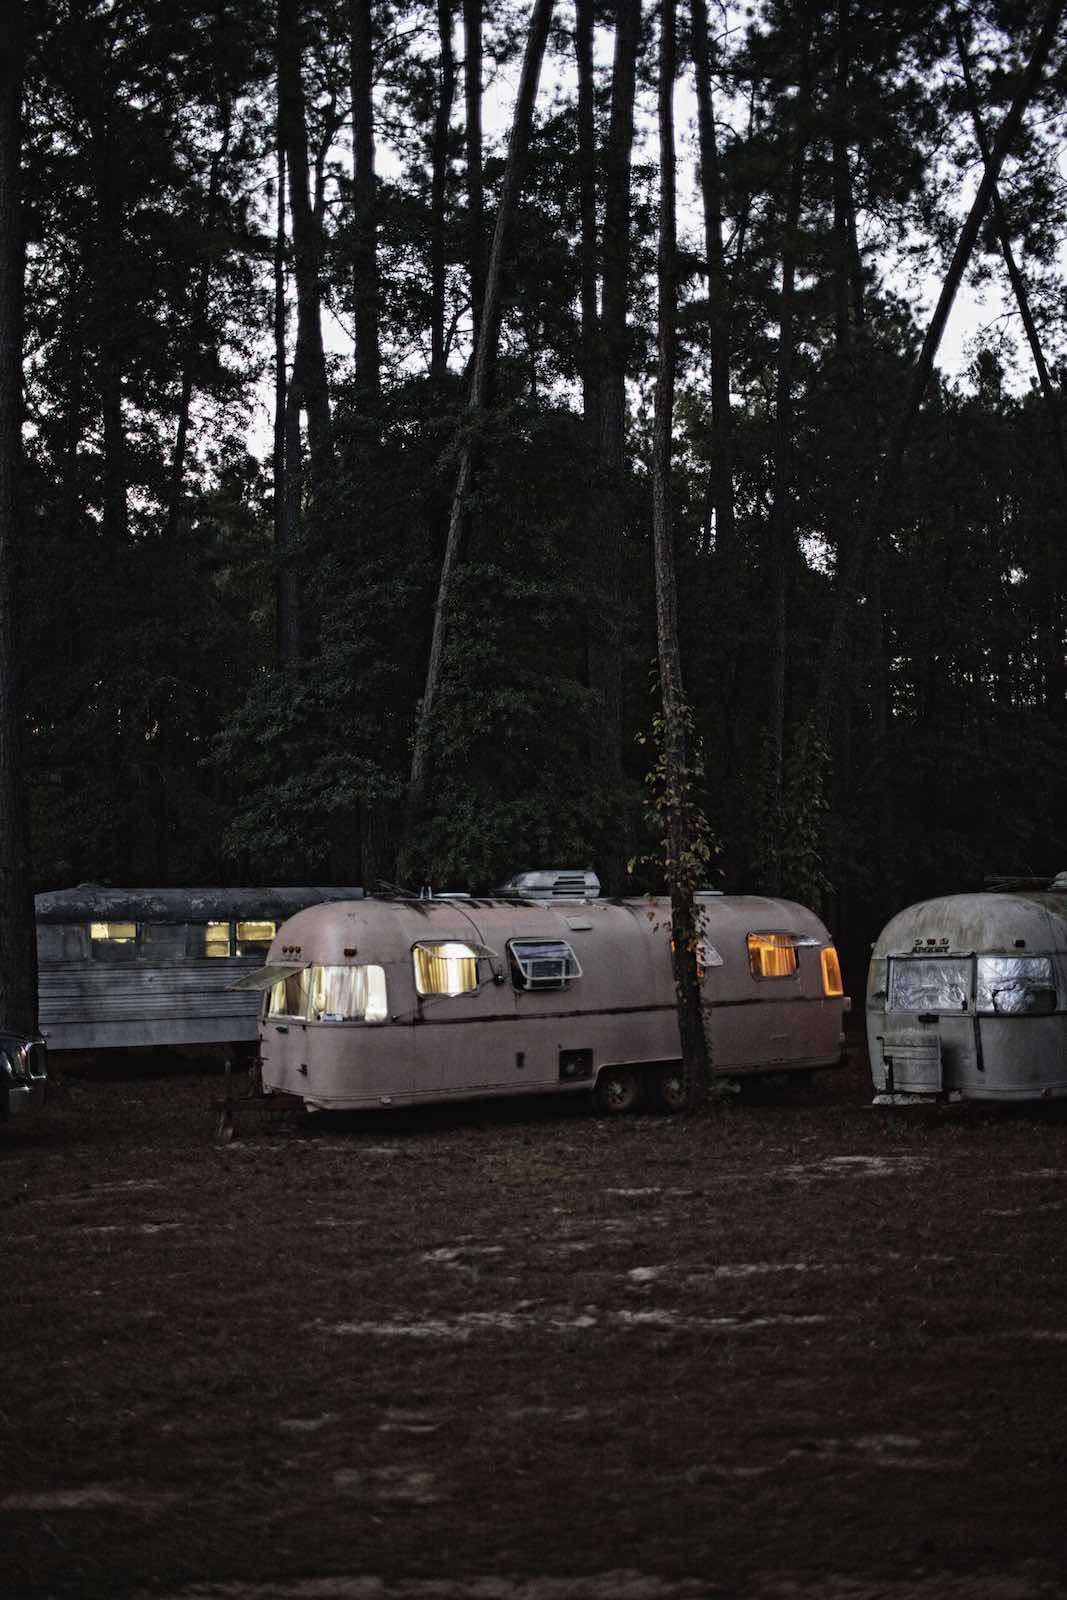 Jody Horton Photography - Vintage campers parked under trees at dusk.